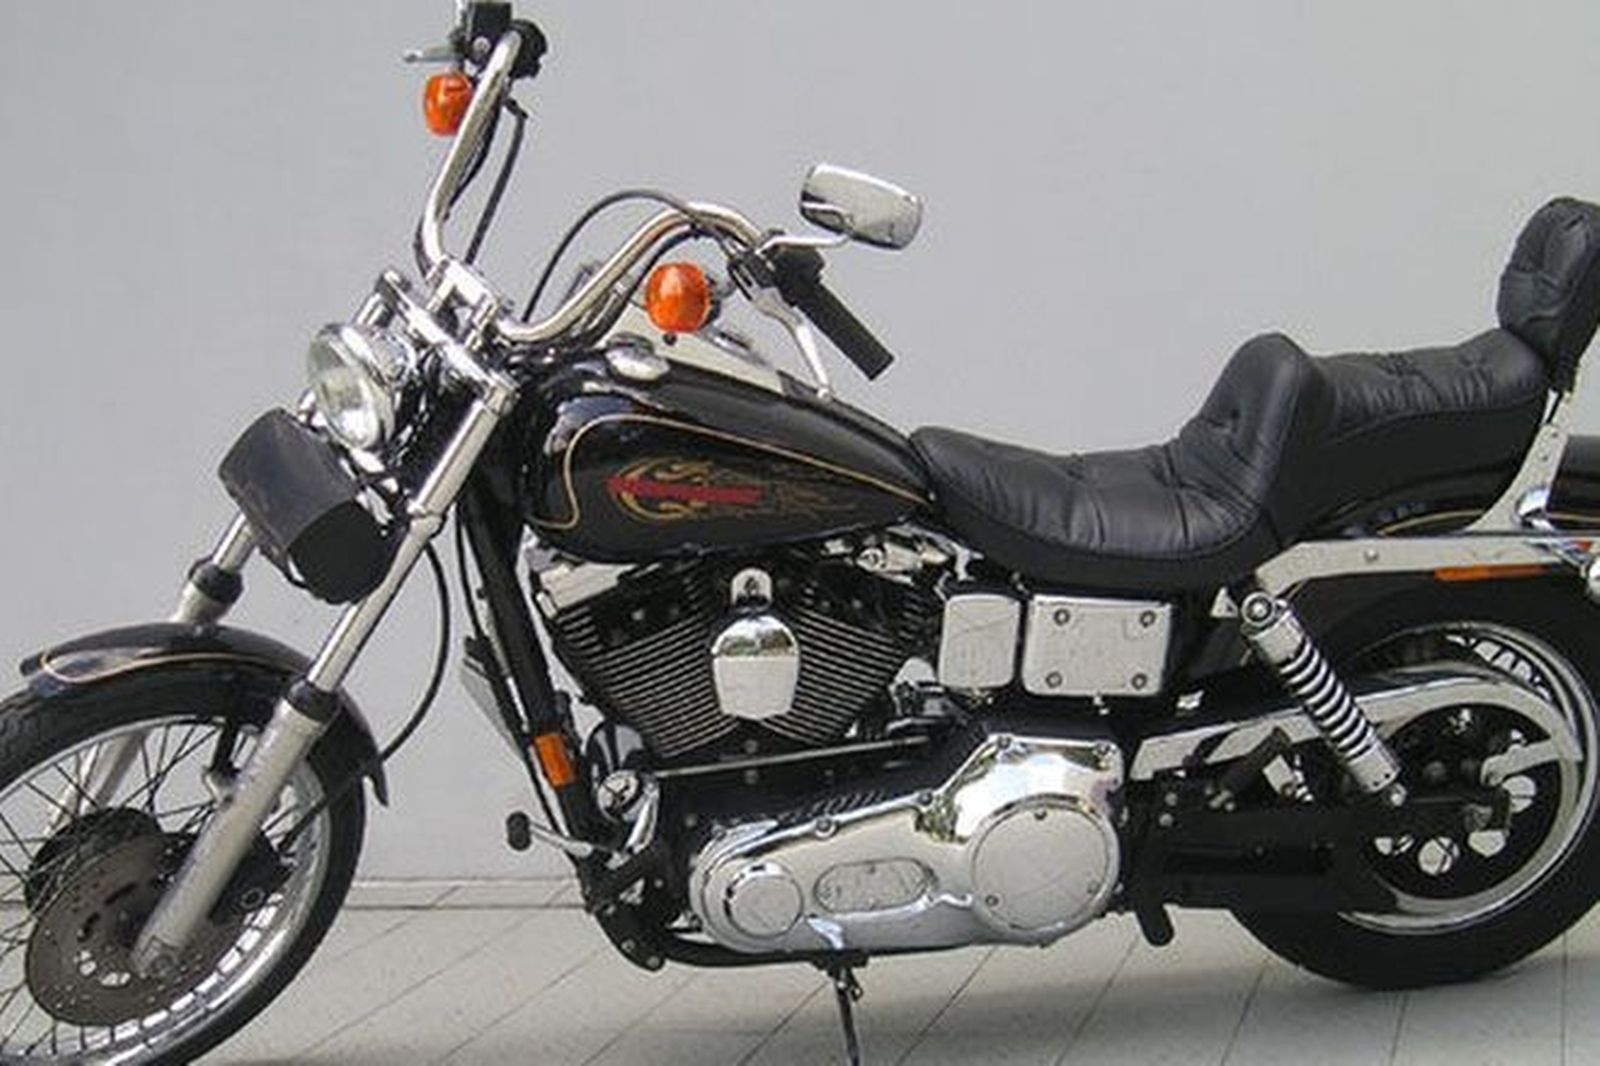 Harley Davidson Dyna On Bike Exif: Harley-Davidson Dyna Wideglide Solo Motorcycle Auctions